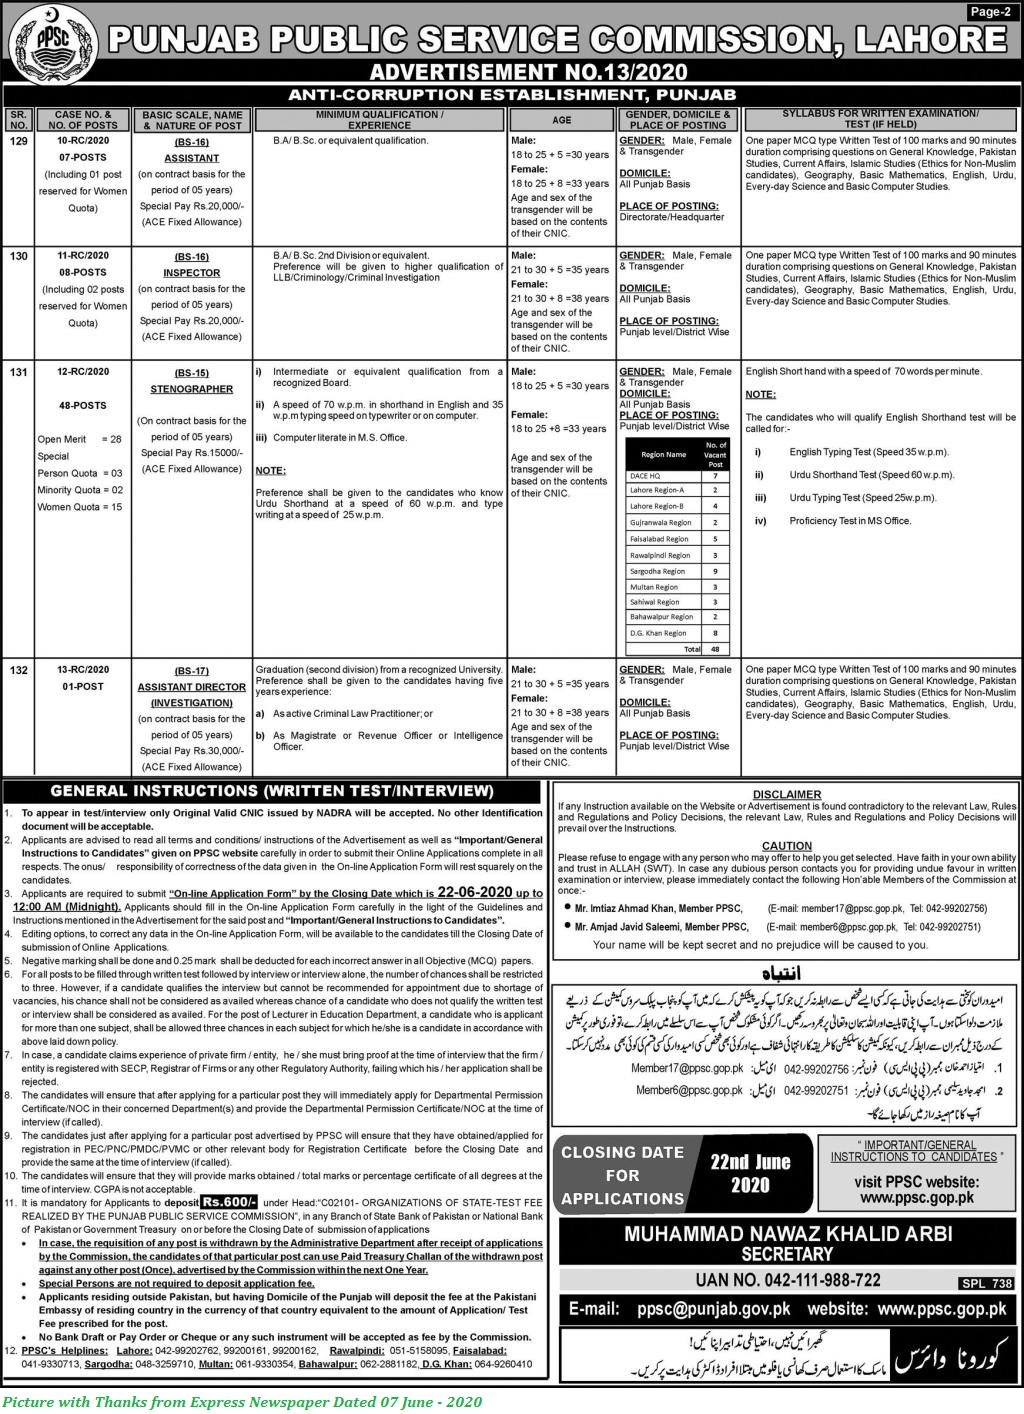 PPSC Jobs 2020 - Latest PPSC Jobs June 2020 Advertisement No. 13/2020